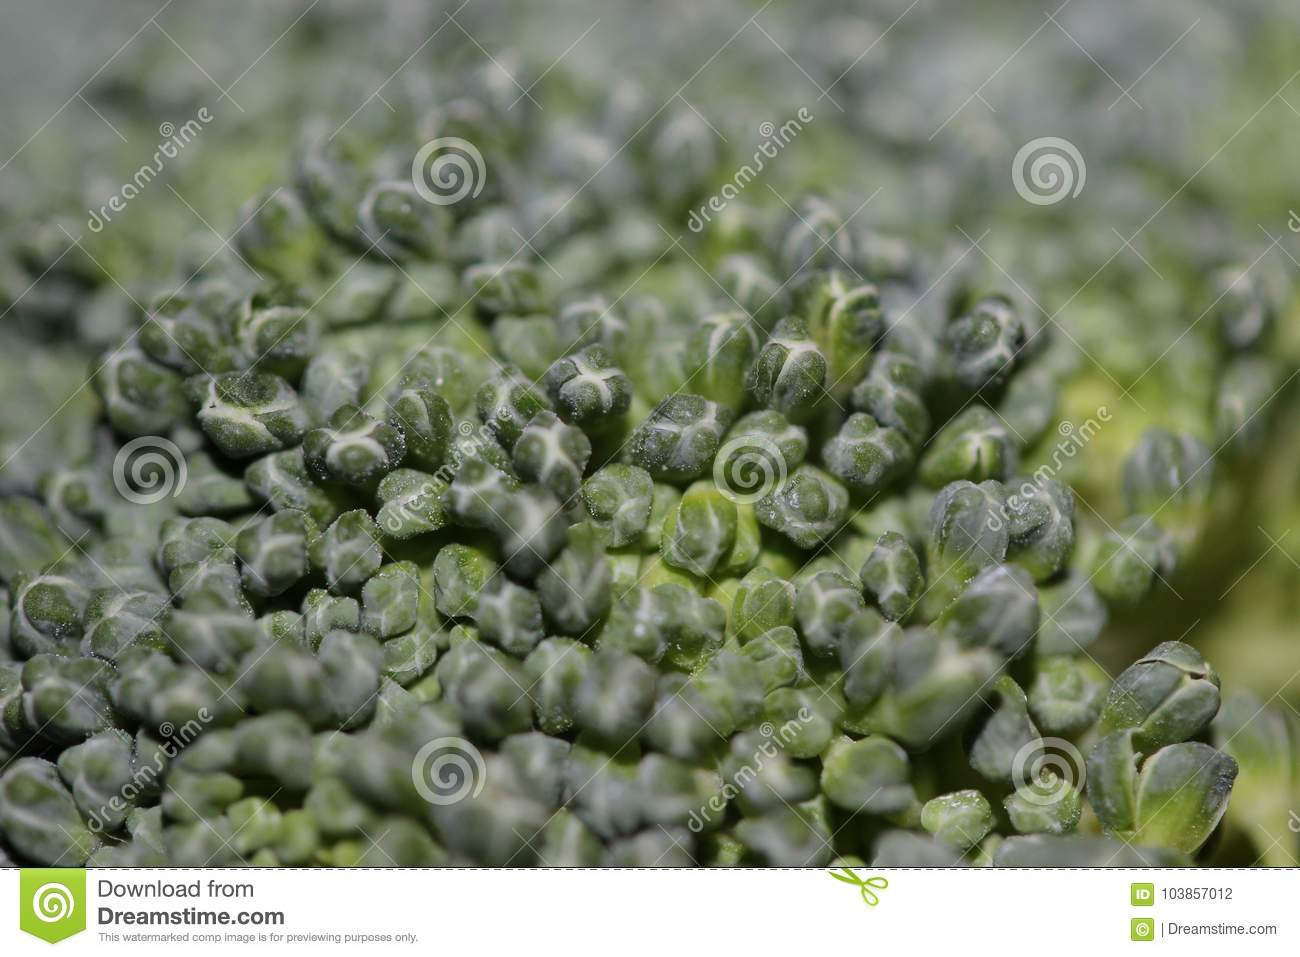 Close Up Of A Broccoli Floret Stock Photo - Image of broccoli